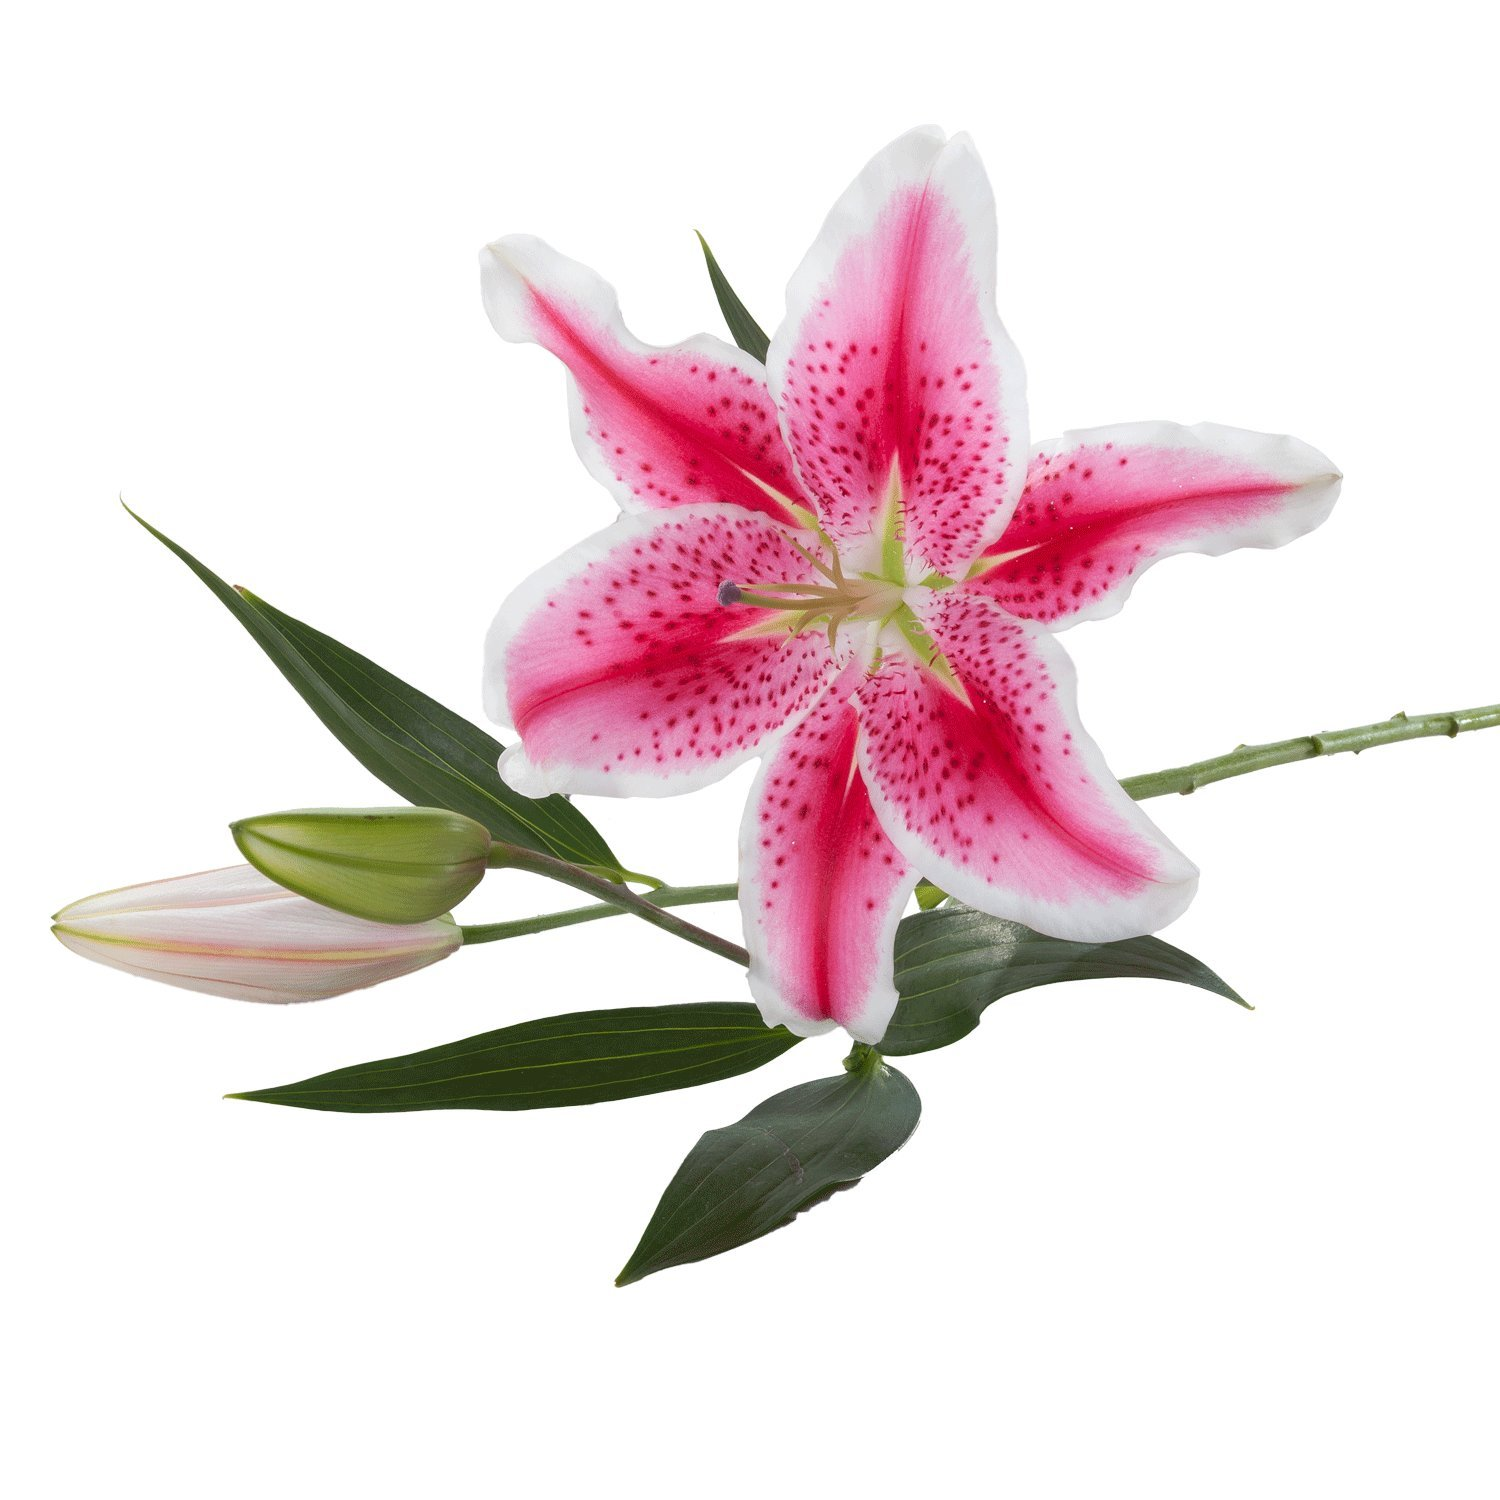 Oriental Lilies | Stargazer - 40 Stem Count by Flower Farm Shop